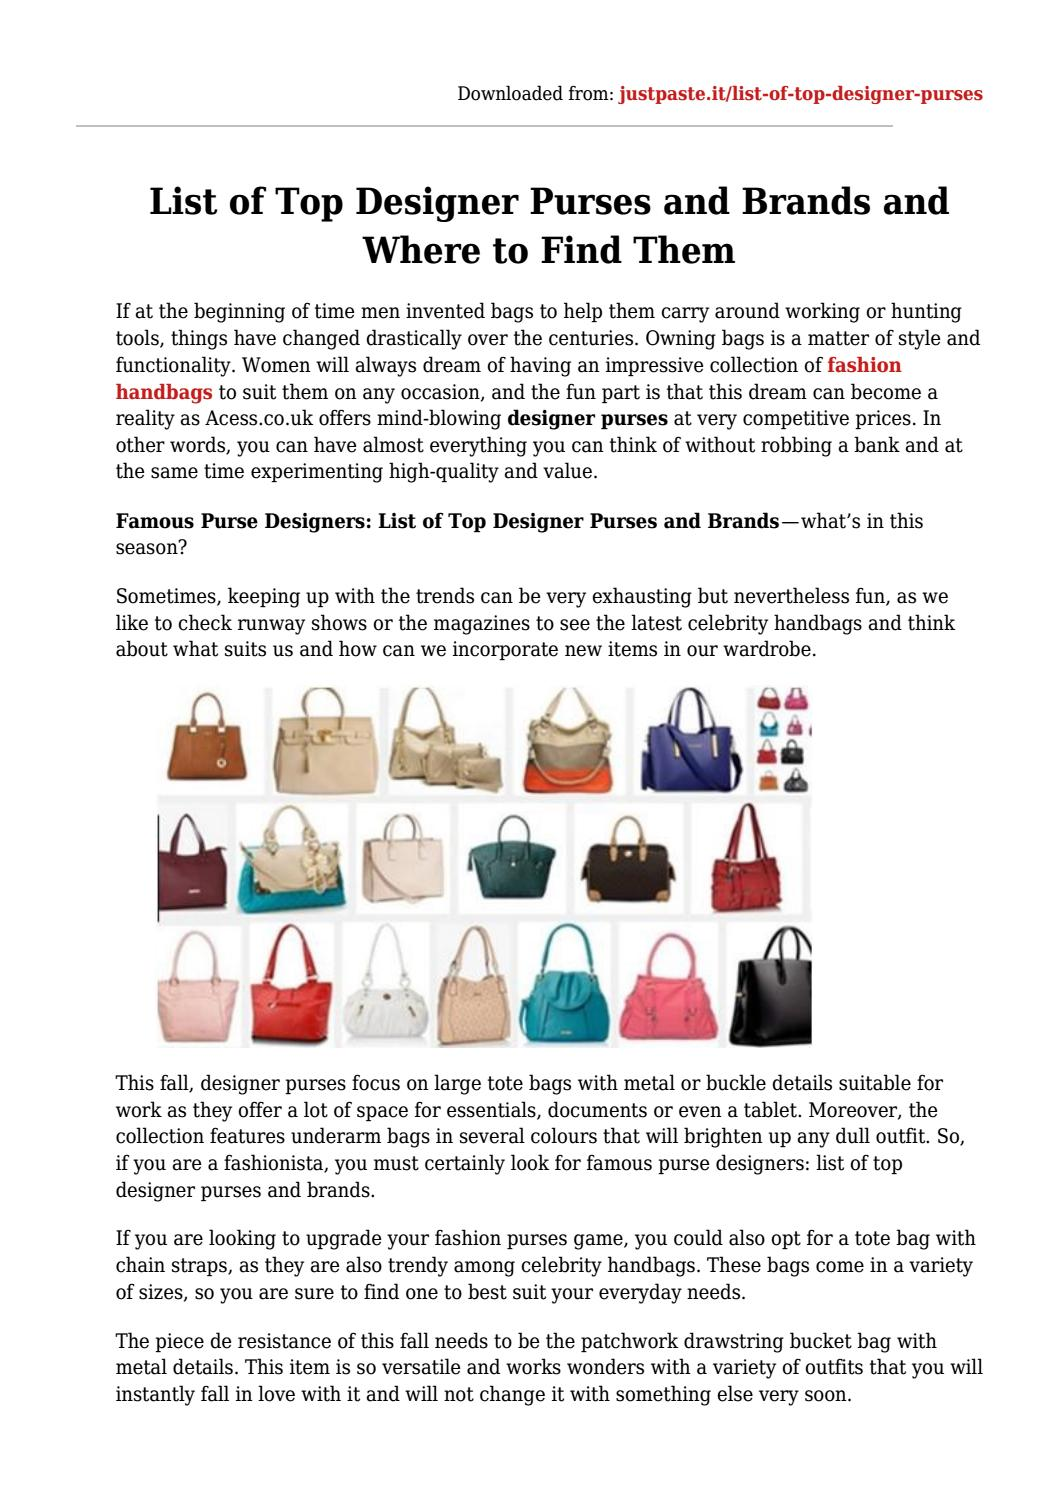 8b5c5818f0 List of top designer purses and brands and where to find them by Acess -  issuu